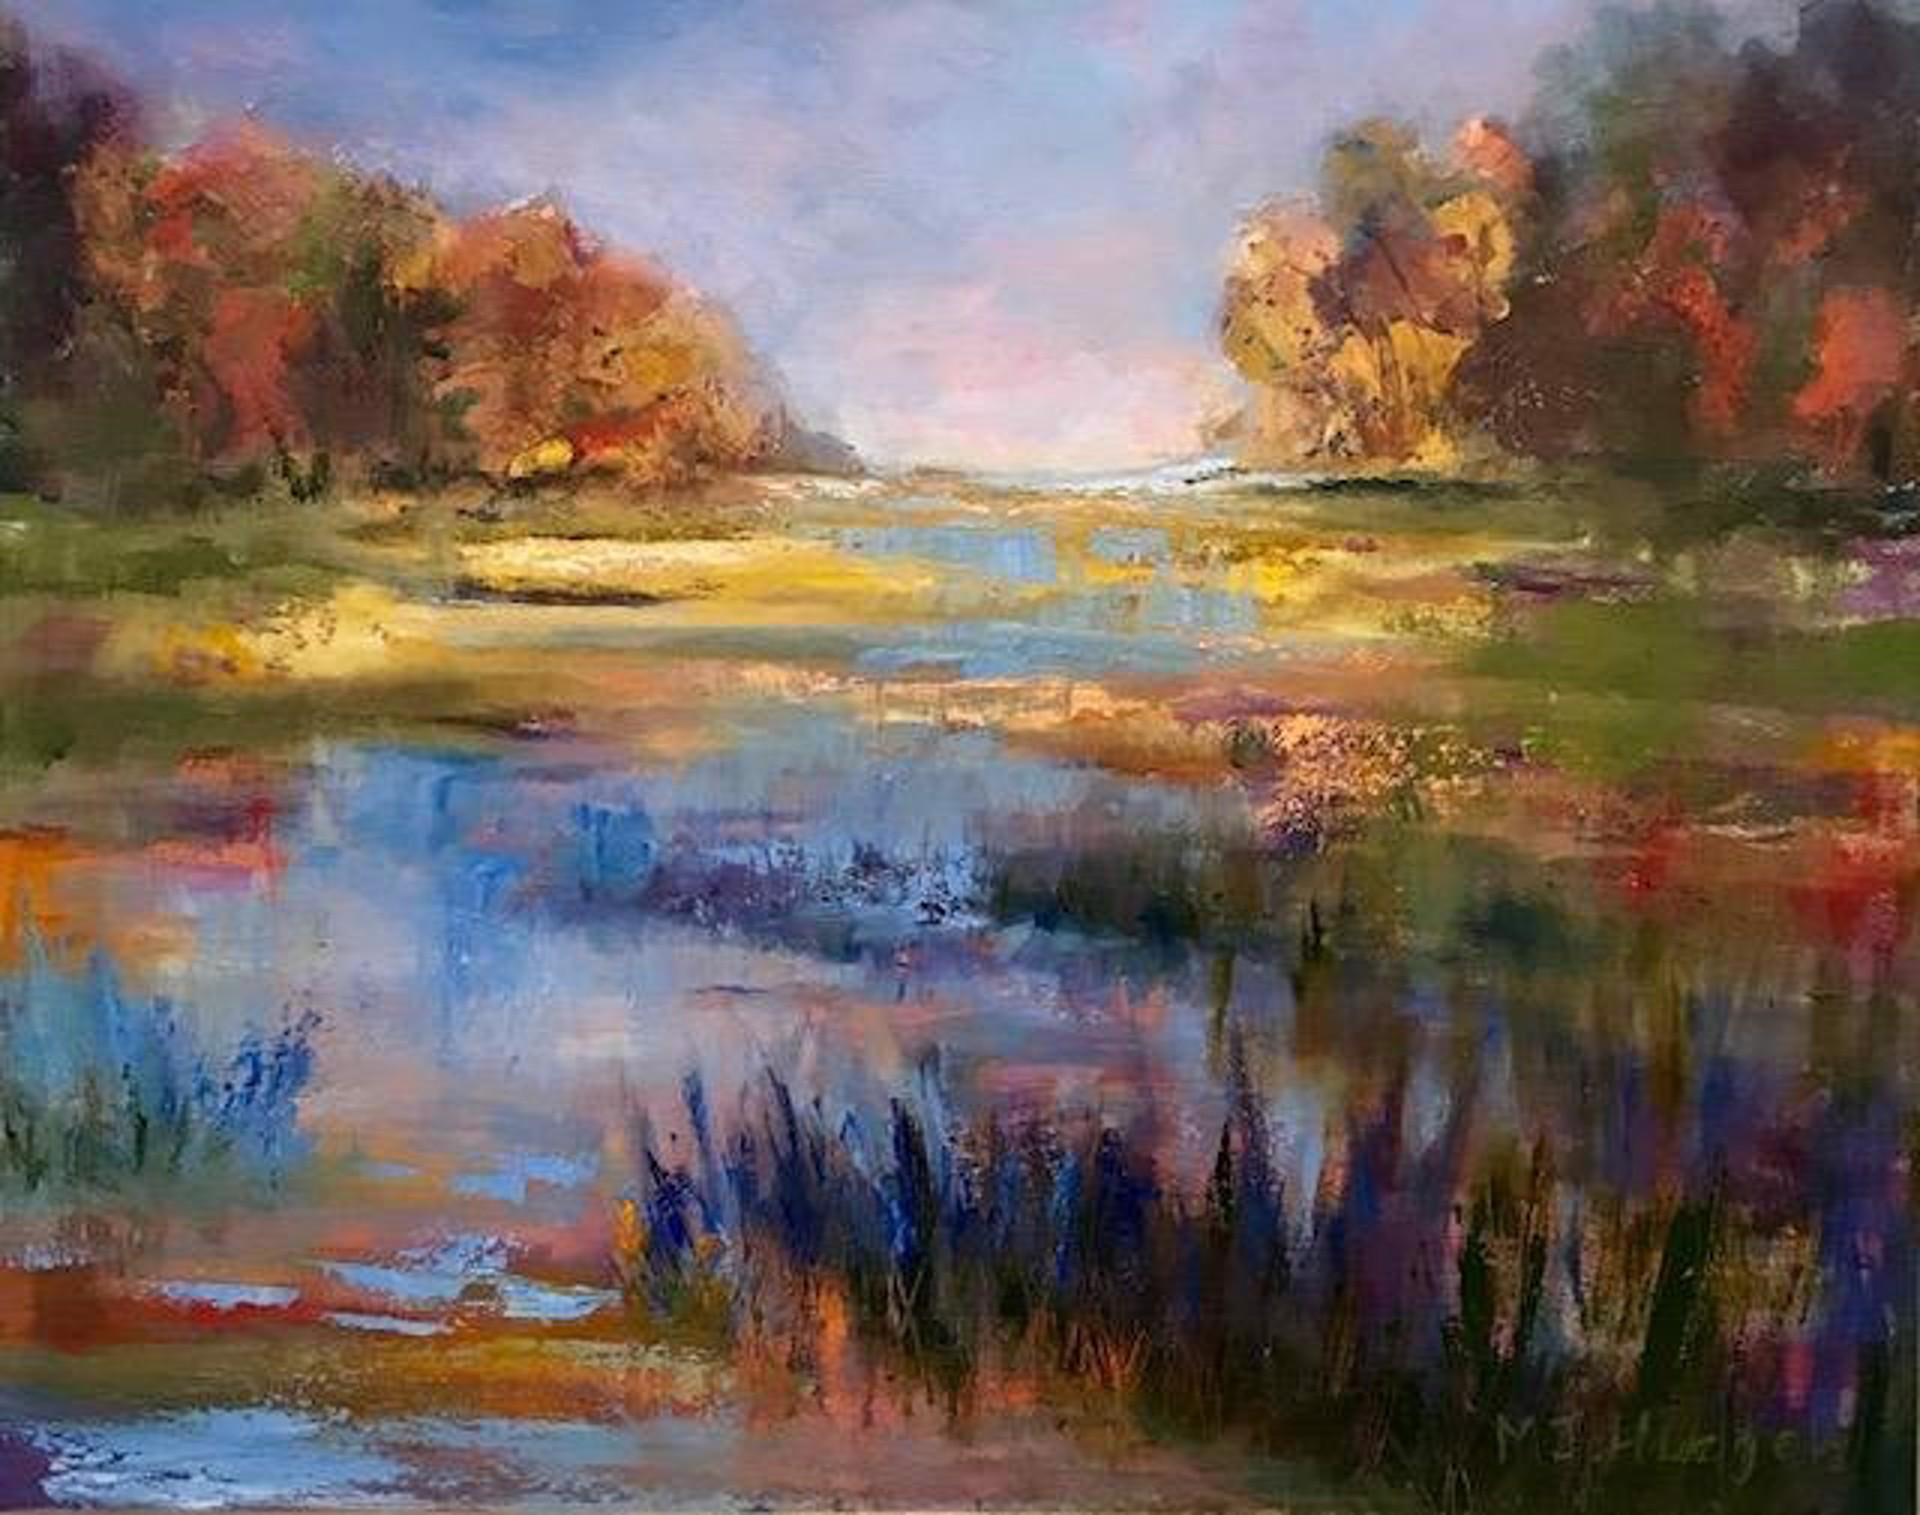 All The Colors by Mary Jane Huegel